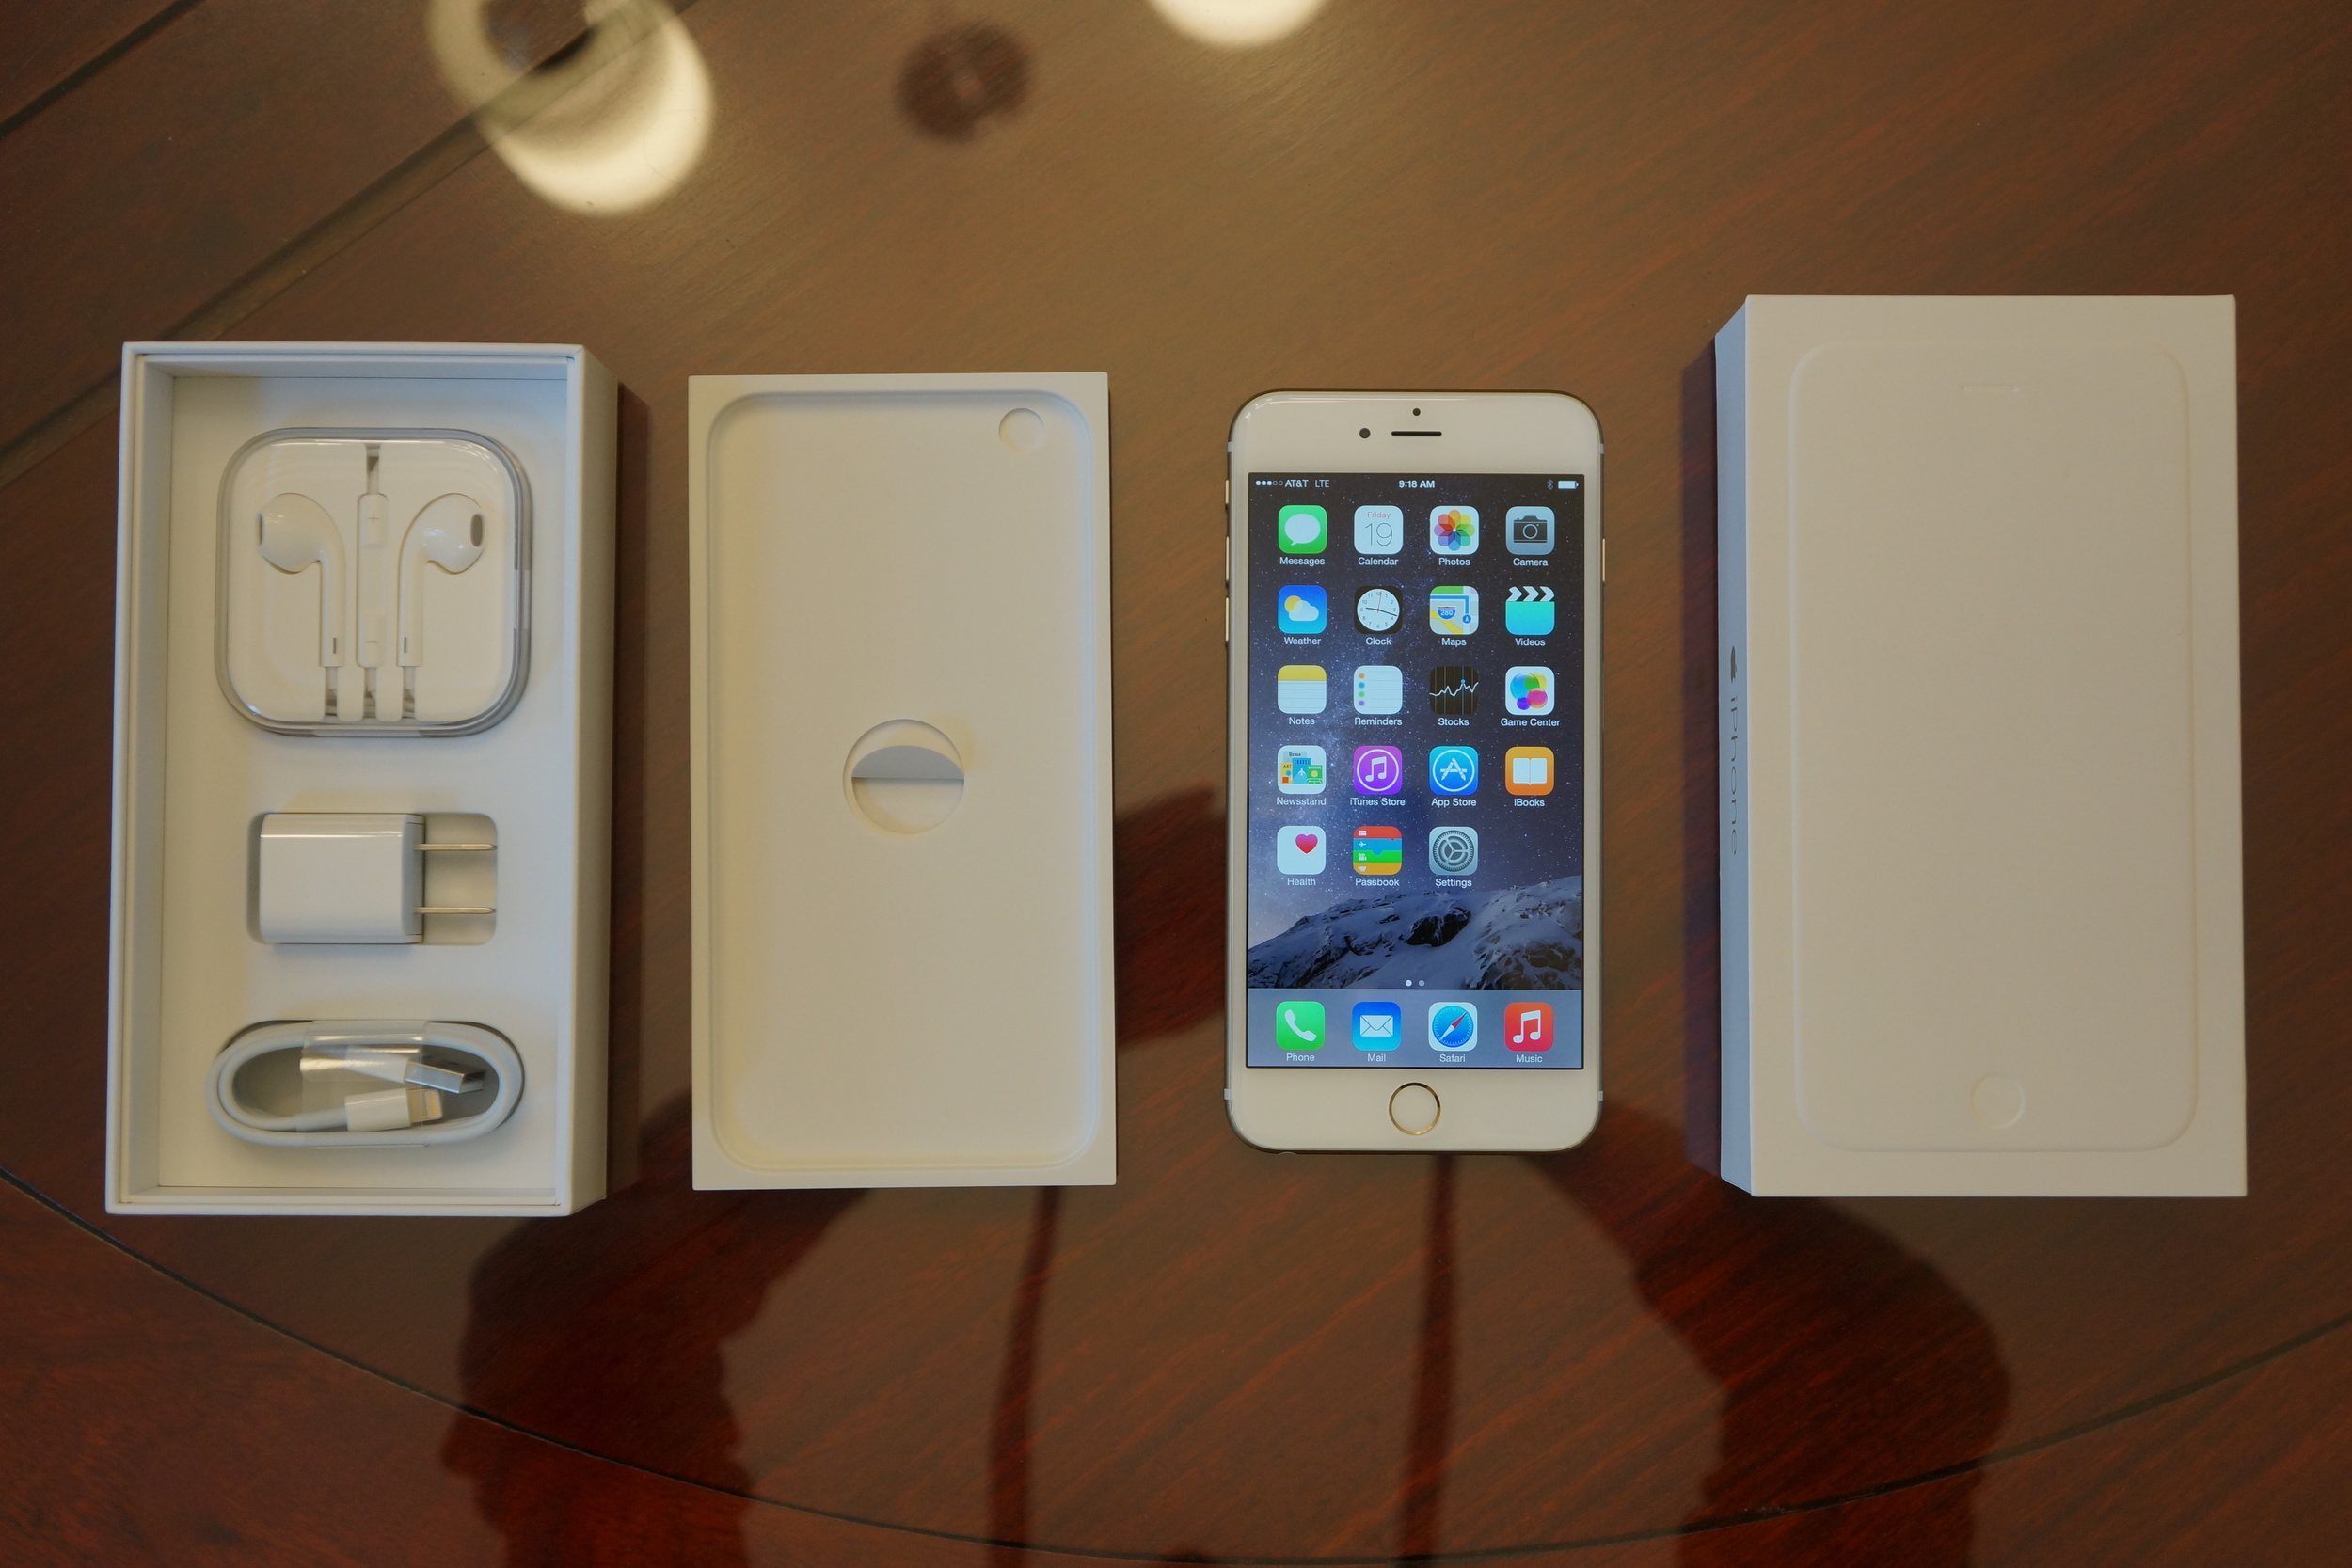 As with all other iPhones in Apple's current lineup, the 6 Plus ships with a set of EarPods with Remote and Mic in travel case, AC adapter, and Lightning to USB cable.